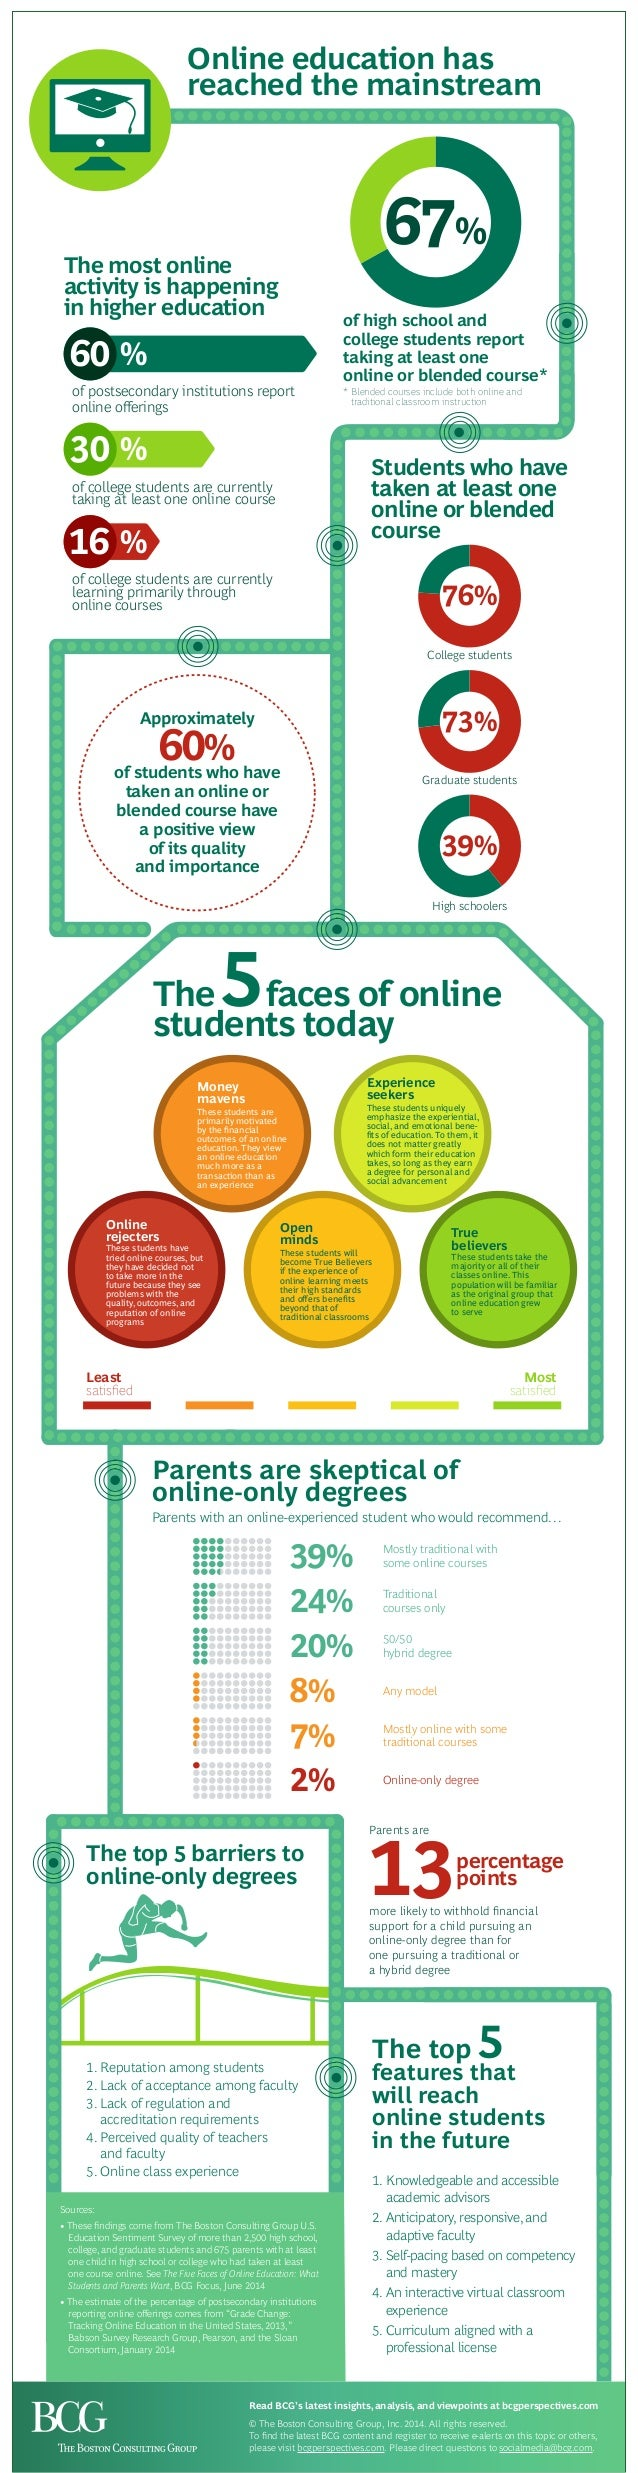 The top 5 features that will reach online students in the future of high school and college students report taking at leas...